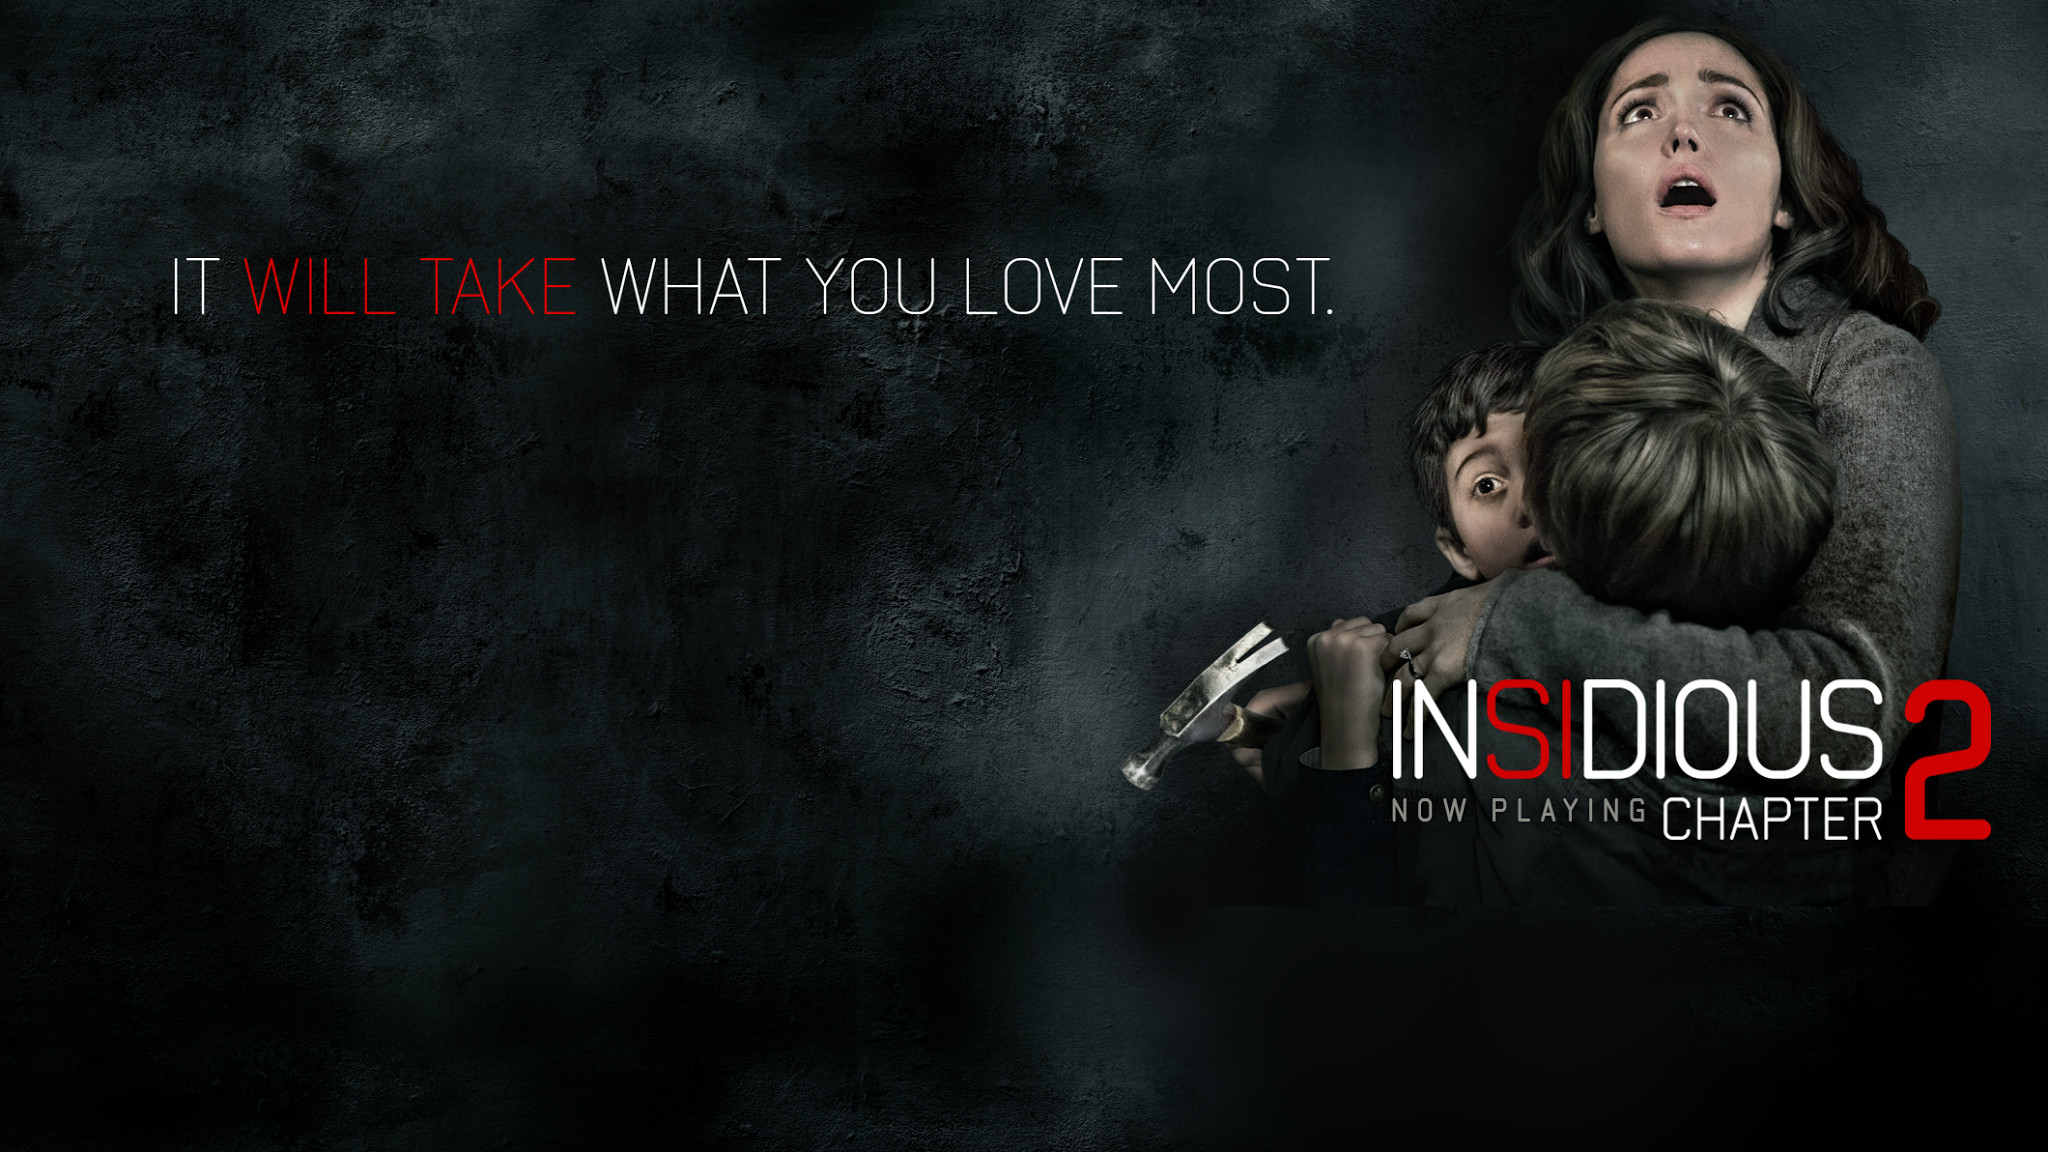 2048x1152 Download Insidious Horror Movie Poster HD Wallpaper. Search more high .